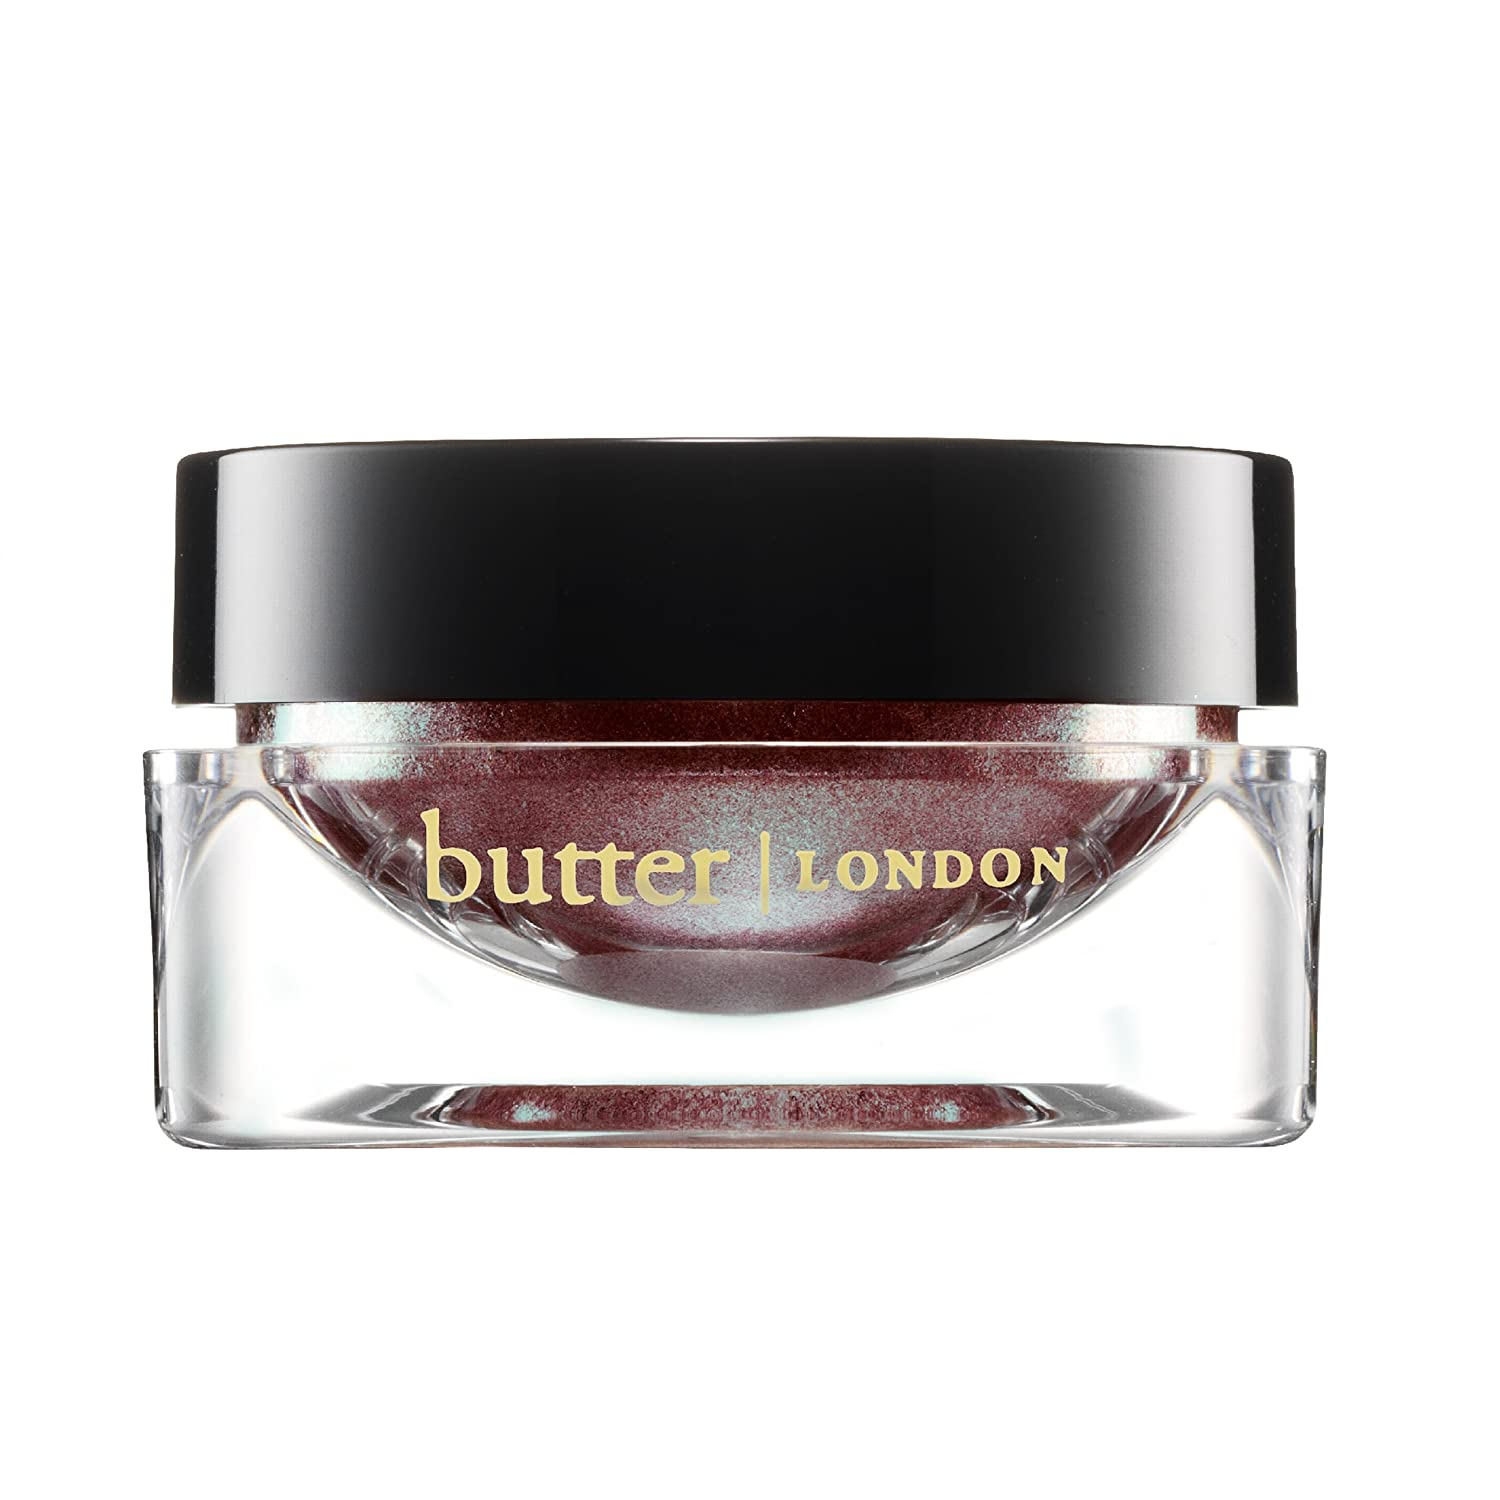 Butter London Glazen Eye Gloss, Oil Slick, Multicolore - 4.8 gr 31546